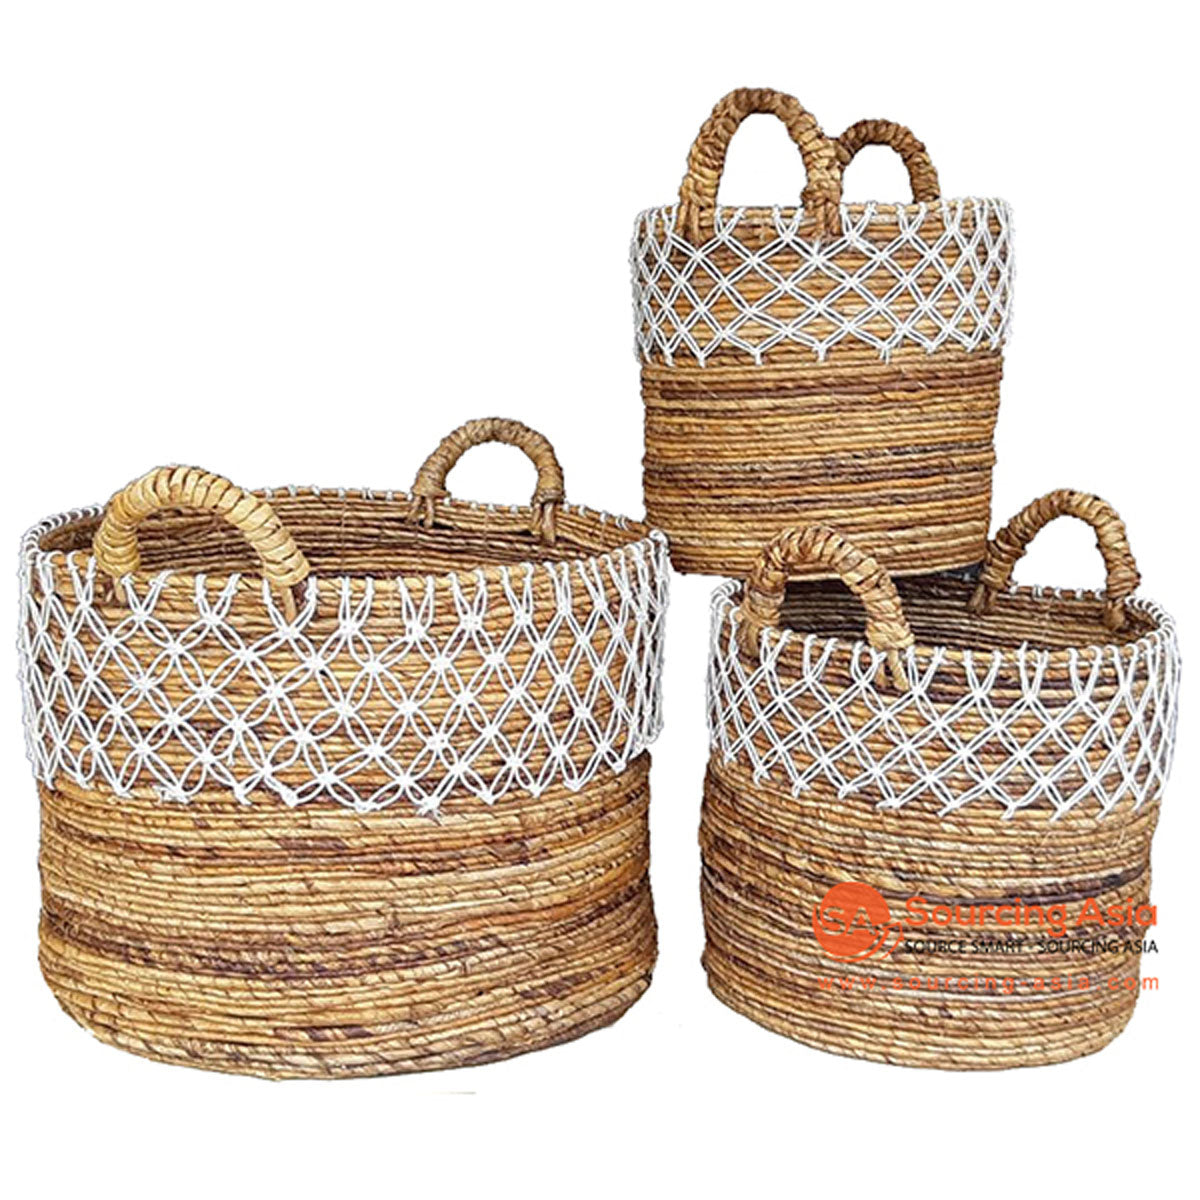 SHL057-12 SET OF THREE NATURAL BANANA FIBER BASKETS WITH MACRAME DETAIL